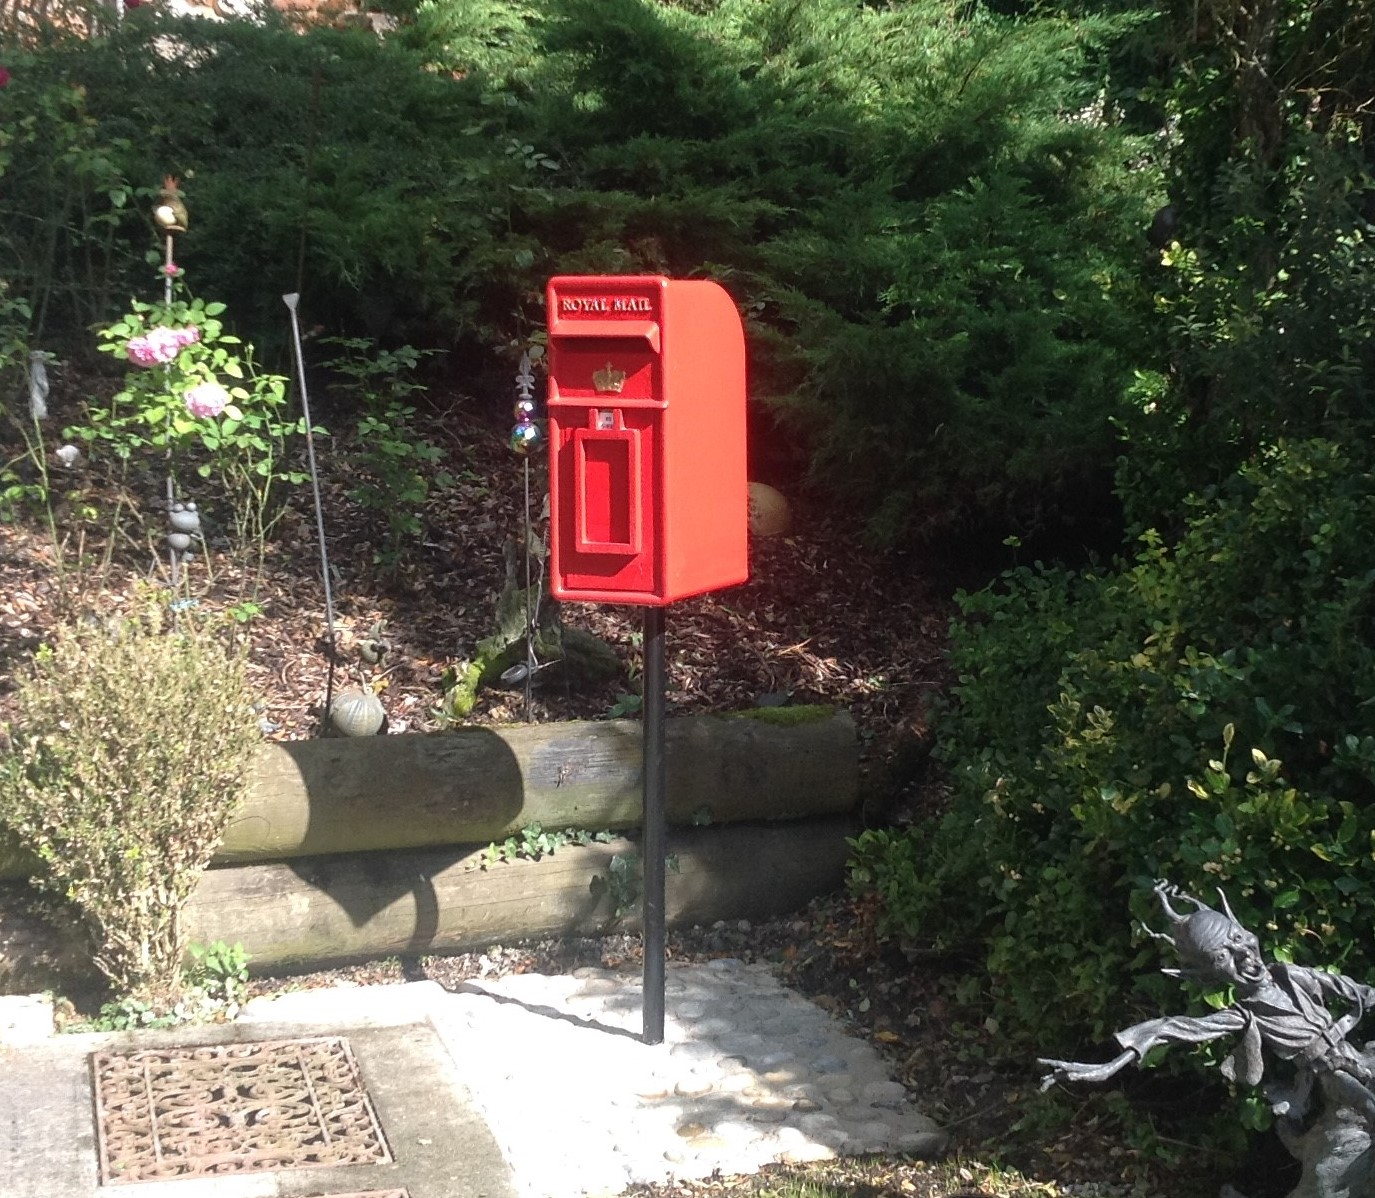 Antique Royal Mail post boxes and pillar boxes can be used in traditional and modern gardens. Buy antique Royal Mail letterboxes on a pole from UKAA